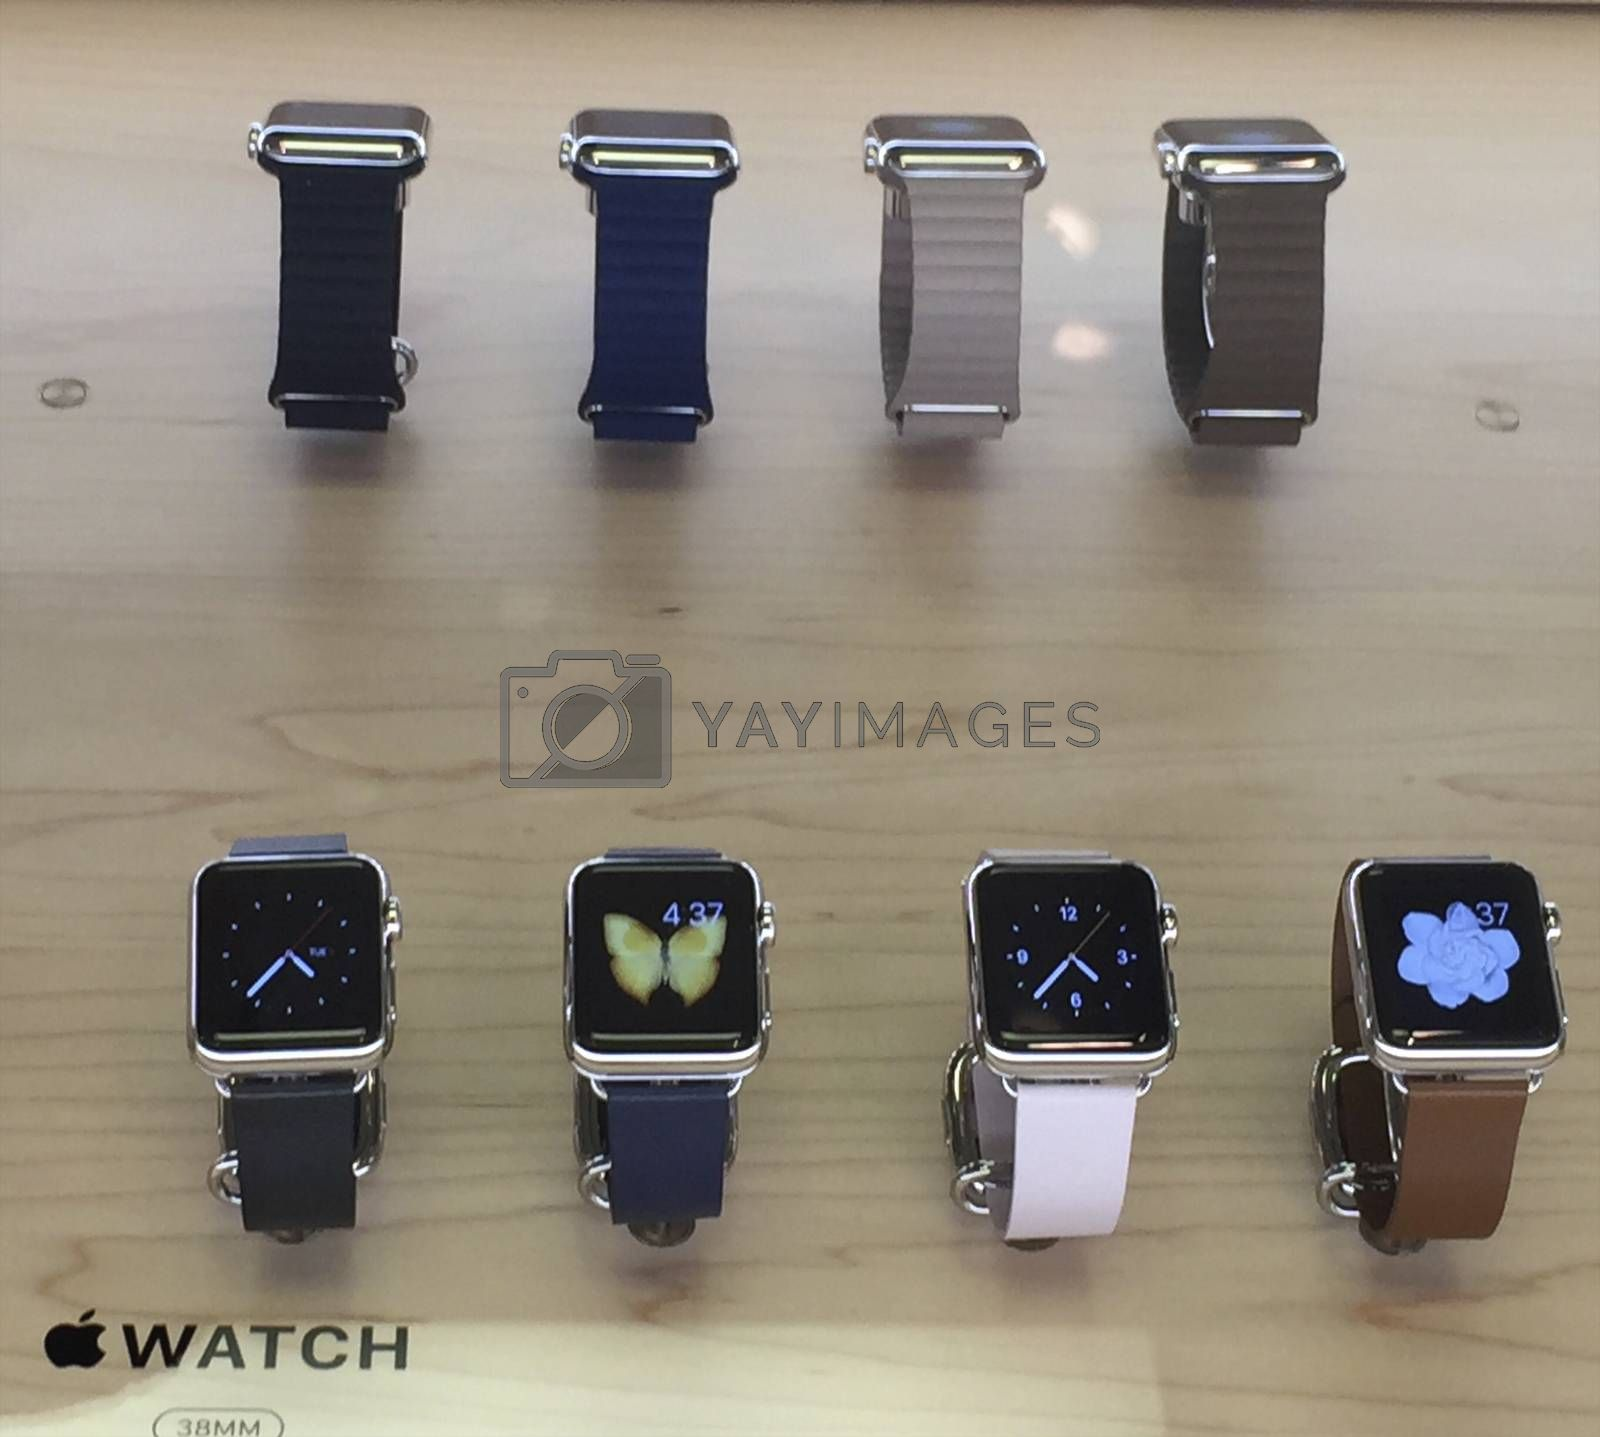 Apple watch displayed in Apple Store, USA.   NEW YORK,  UNITED STATES AMERICA - APR 25 2015: New Apple Watch smartwatch displaying inside a glass cabinet, New York, USA